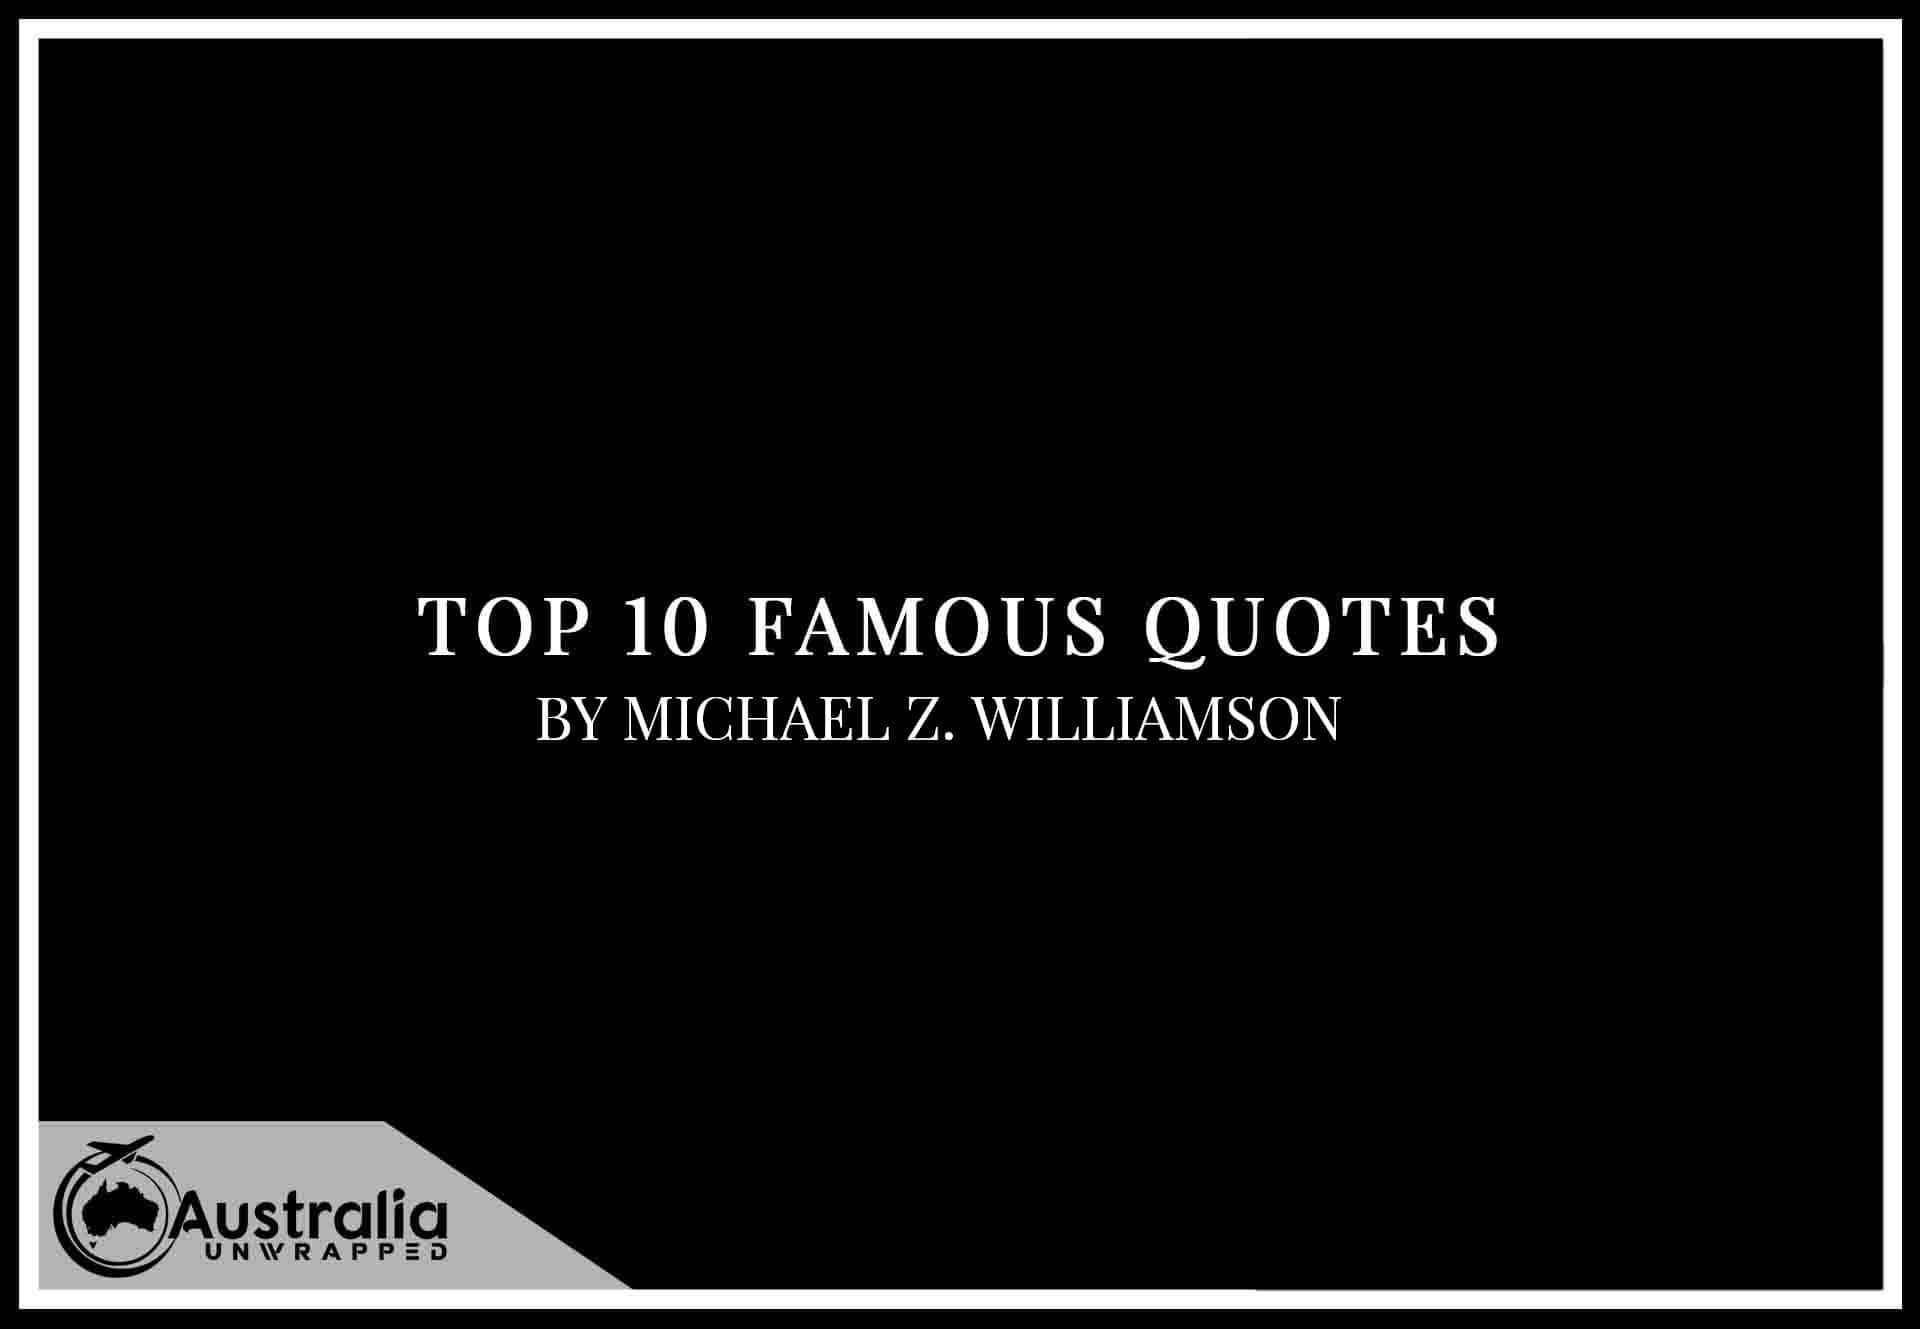 Top 10 Famous Quotes by Author Michael Z. Williamson